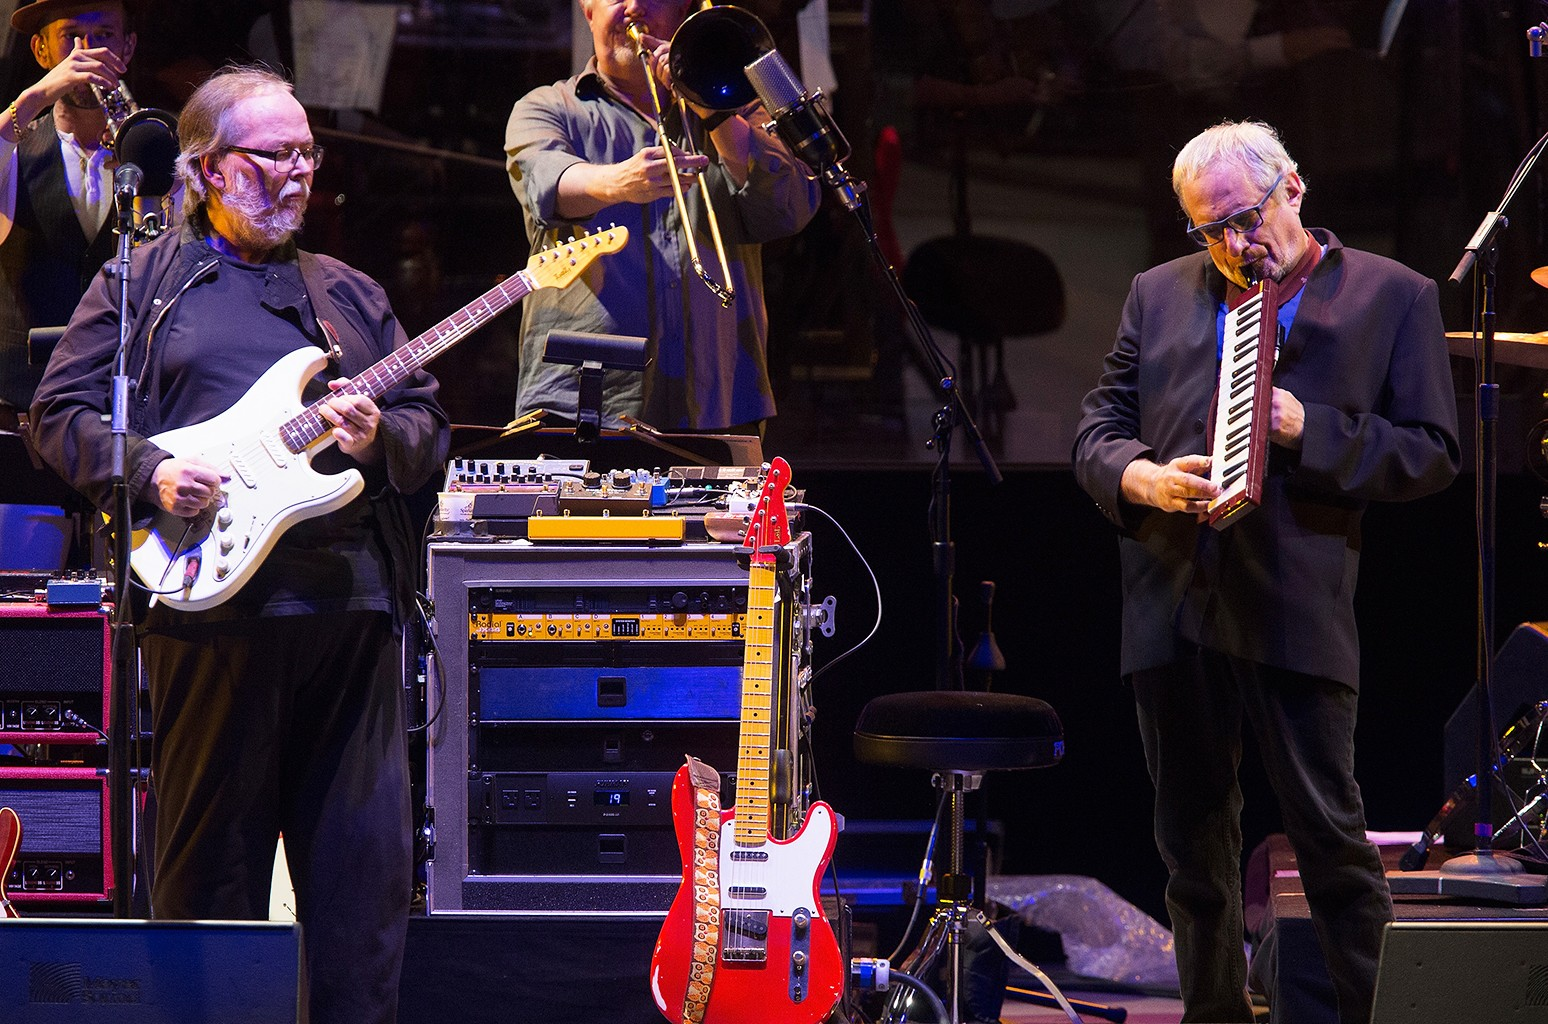 Walter Becker and Donald Fagen of Steely Dan perform at the Hollywood Bowl Opening Night at the Hollywood Bowl on June 18, 2016 in Hollywood, Calif.